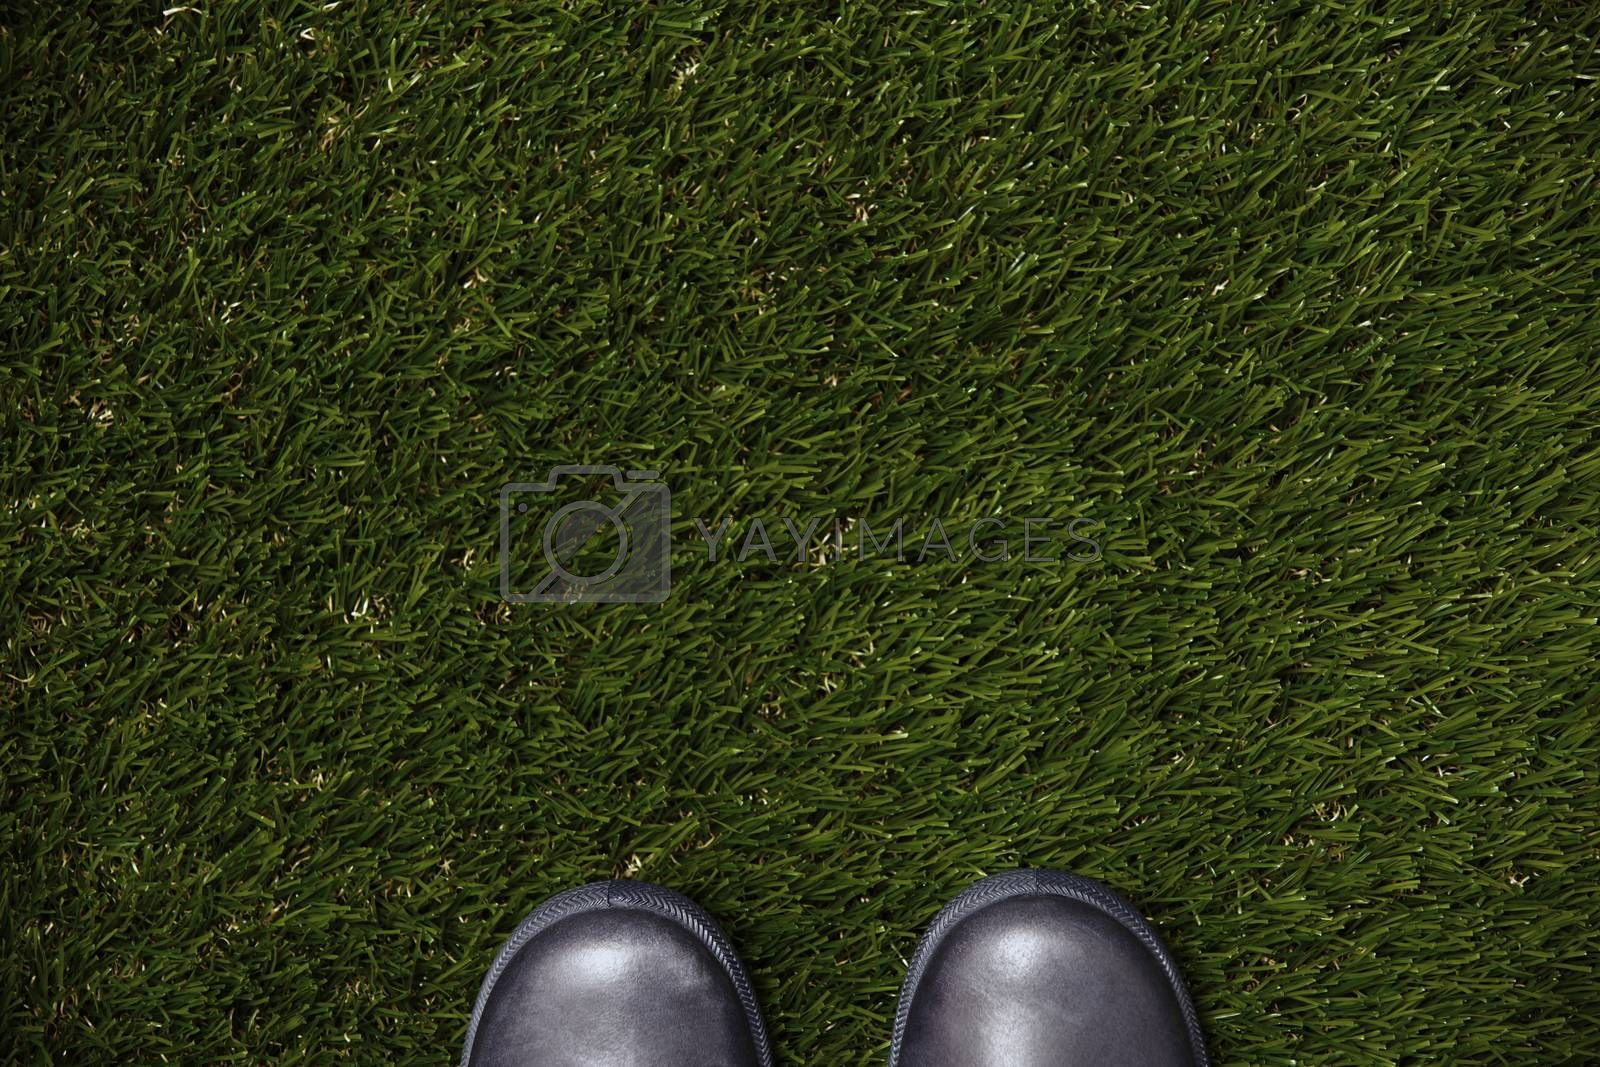 View from above to the boots standing on a grass